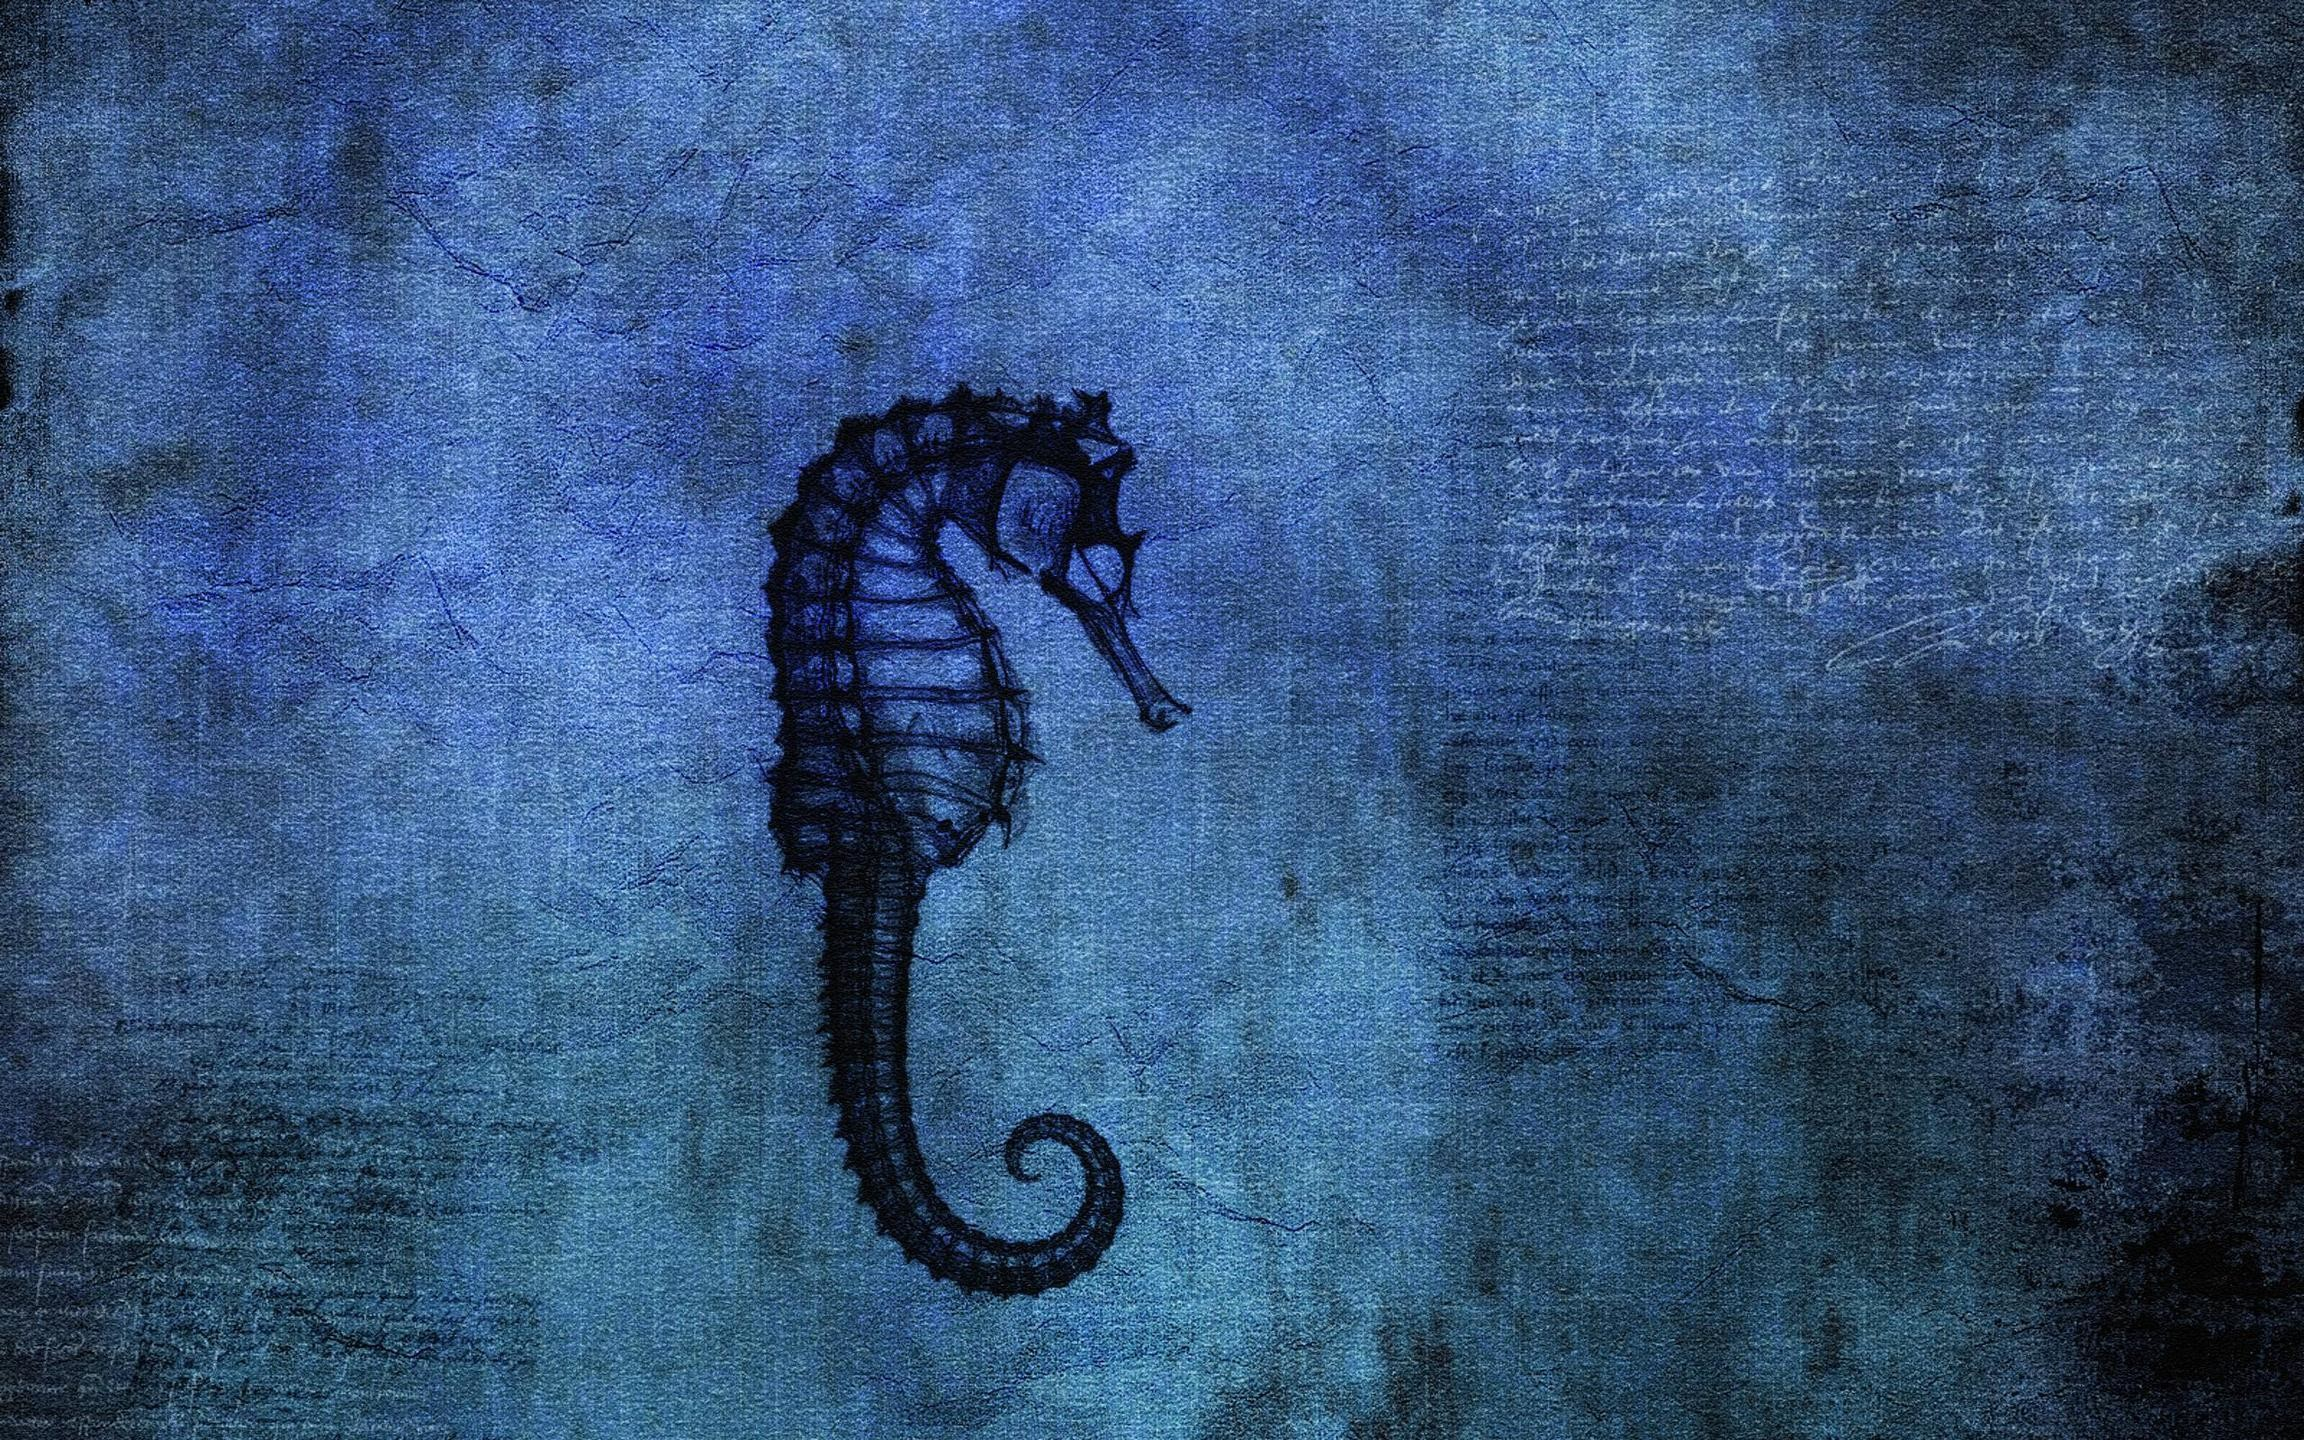 Res: 2304x1440, 17 Seahorse Wallpapers | Seahorse Backgrounds